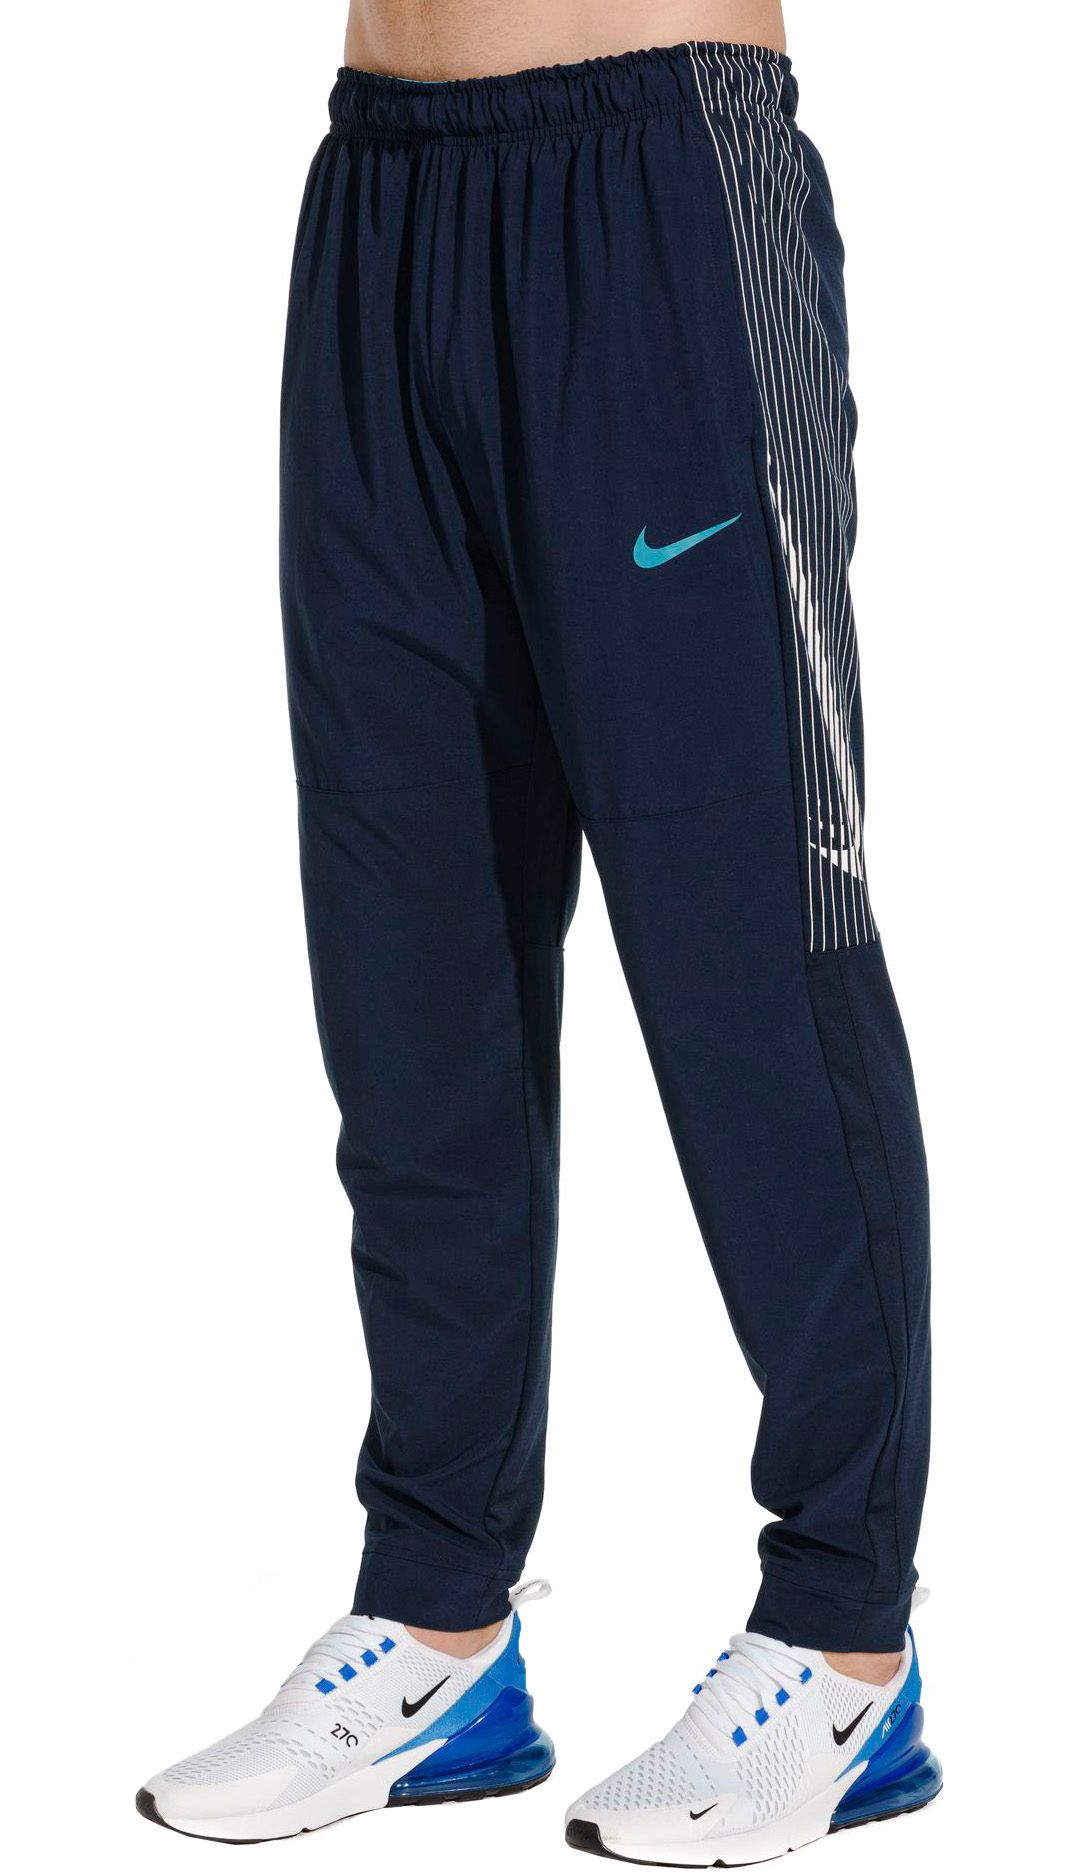 5f09dc32fa Nike Men's Dry Linear Vision Tapered Pants